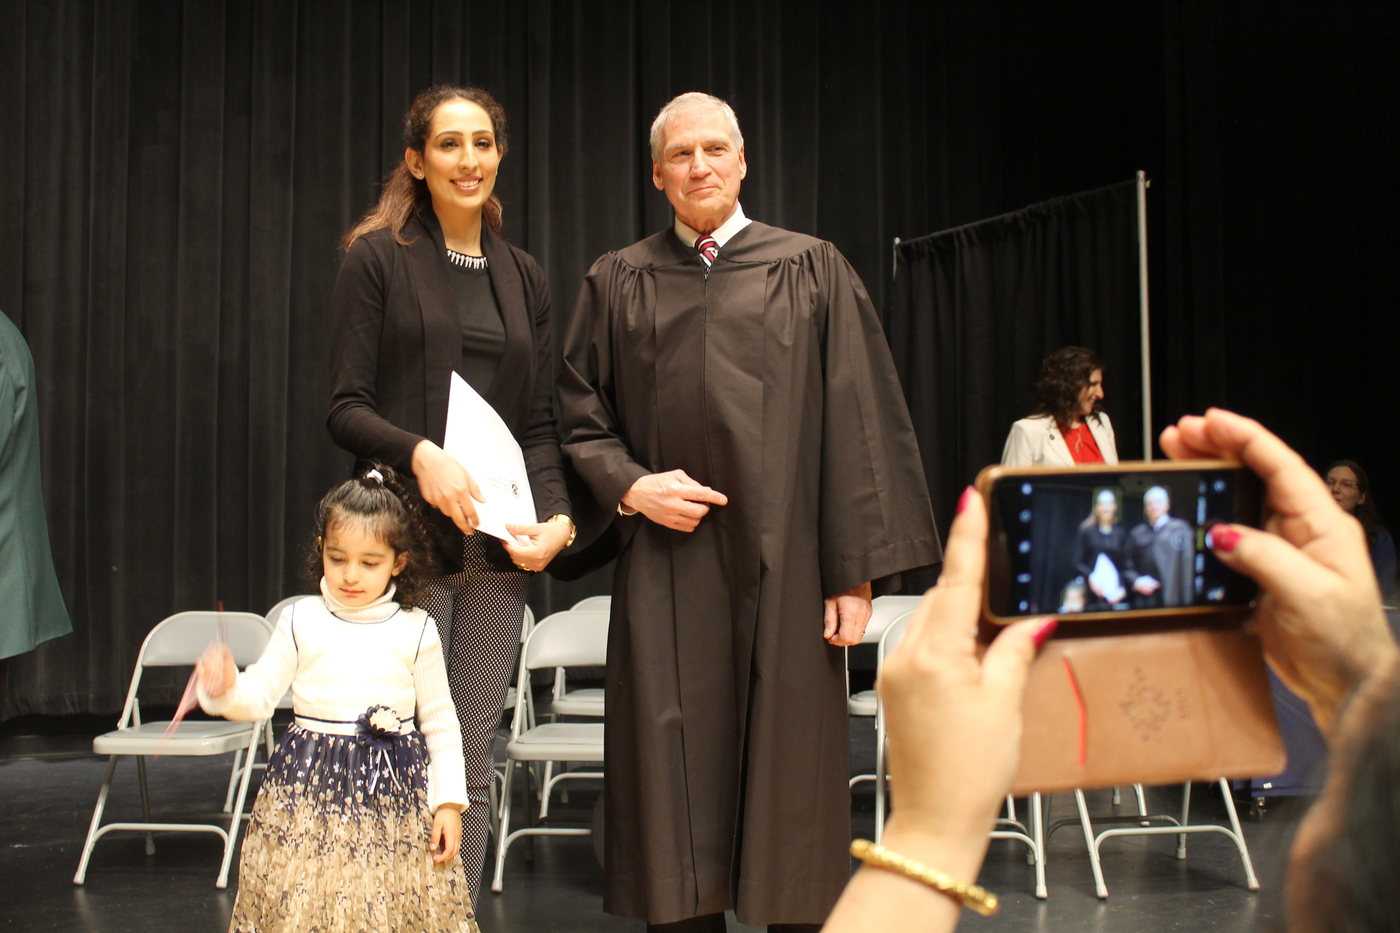 Federal judge welcomes 20 new citizens at Plattsburgh